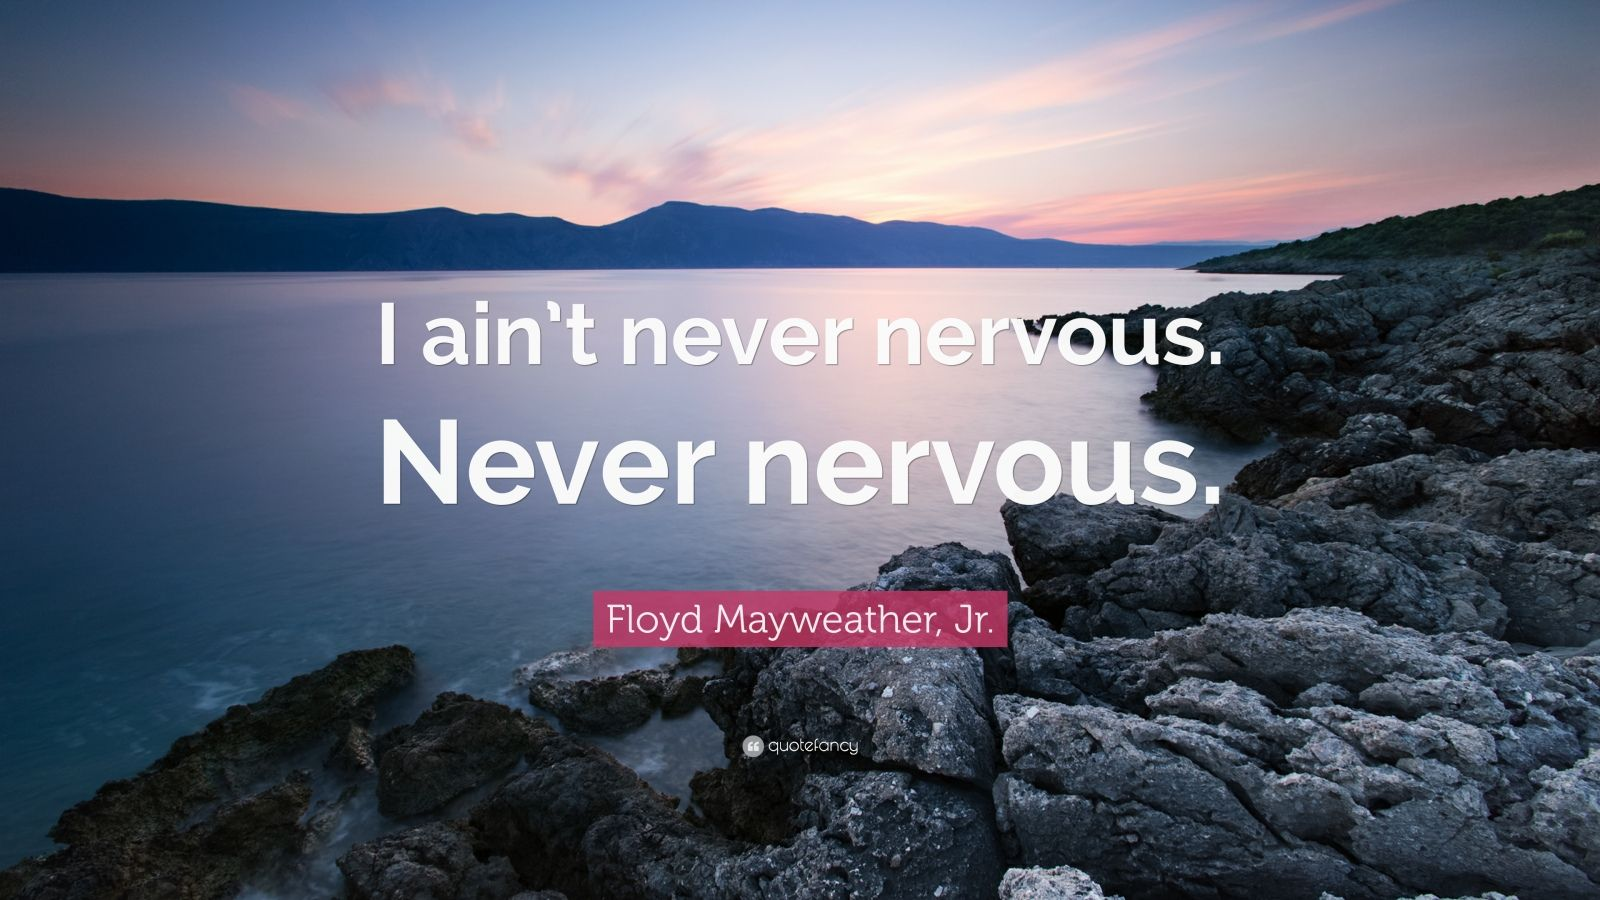 """Floyd Mayweather, Jr. Quote: """"I ain't never nervous. Never nervous."""""""